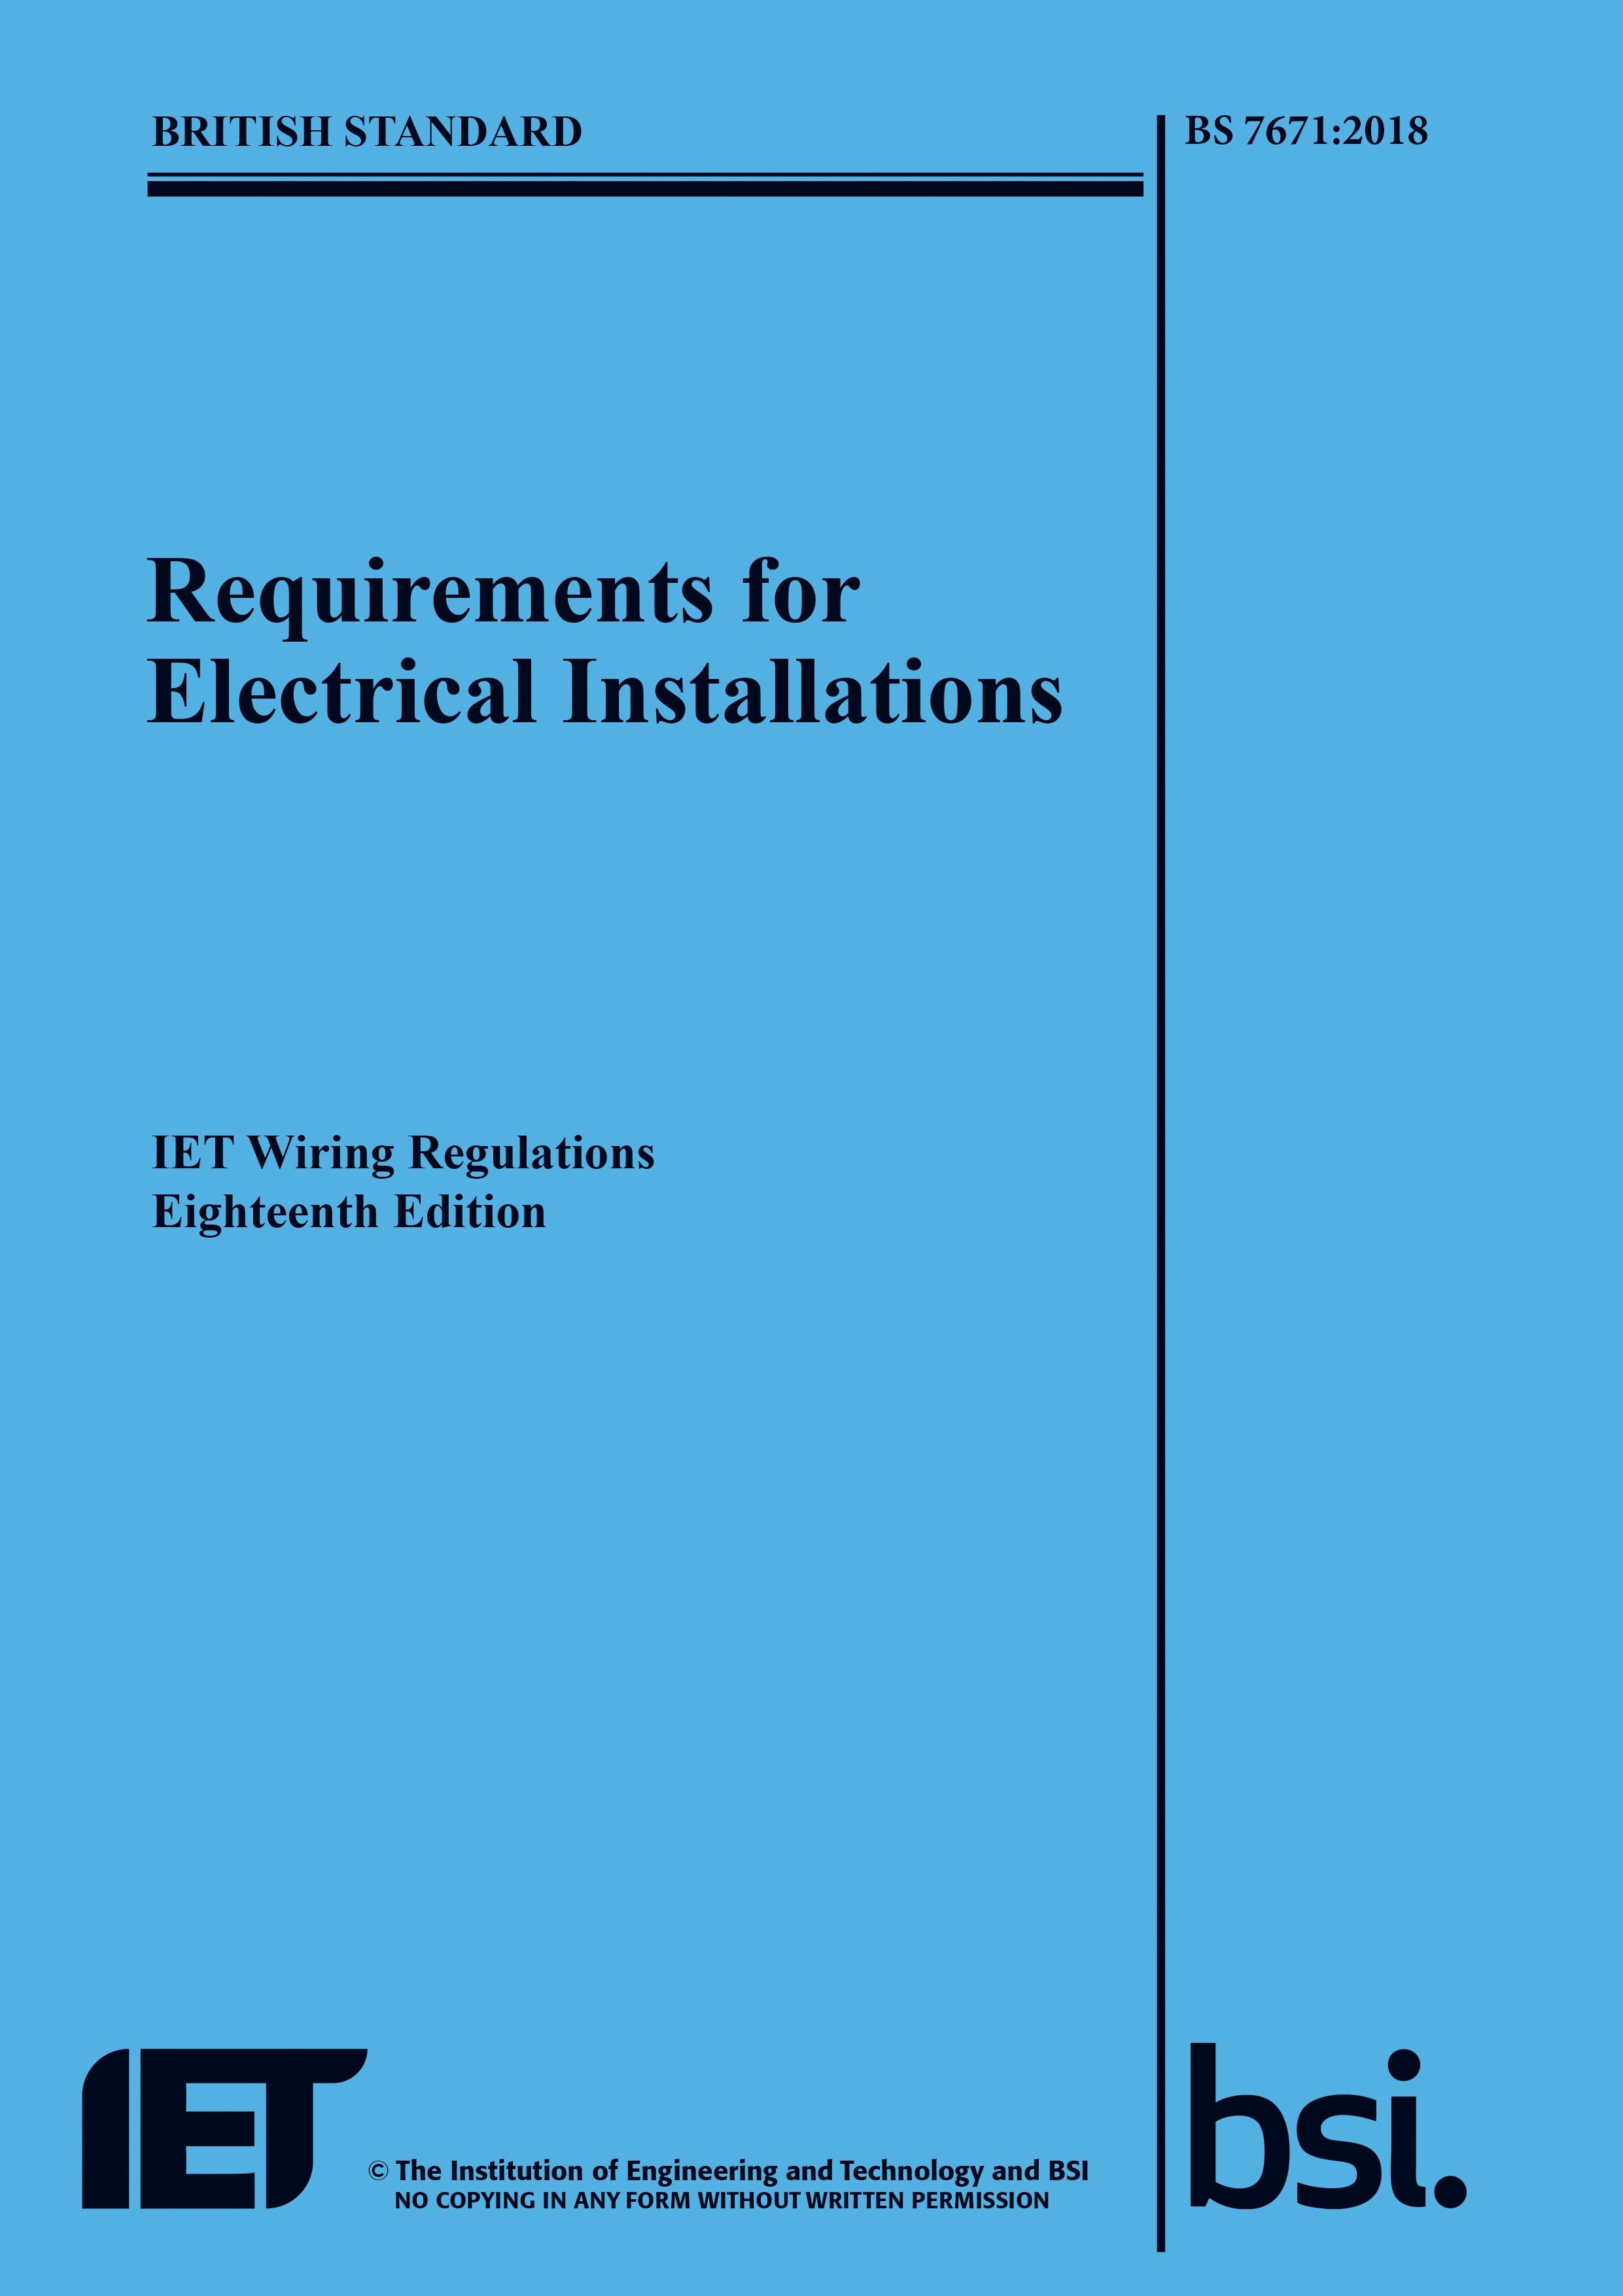 Electrical Testing & Certification